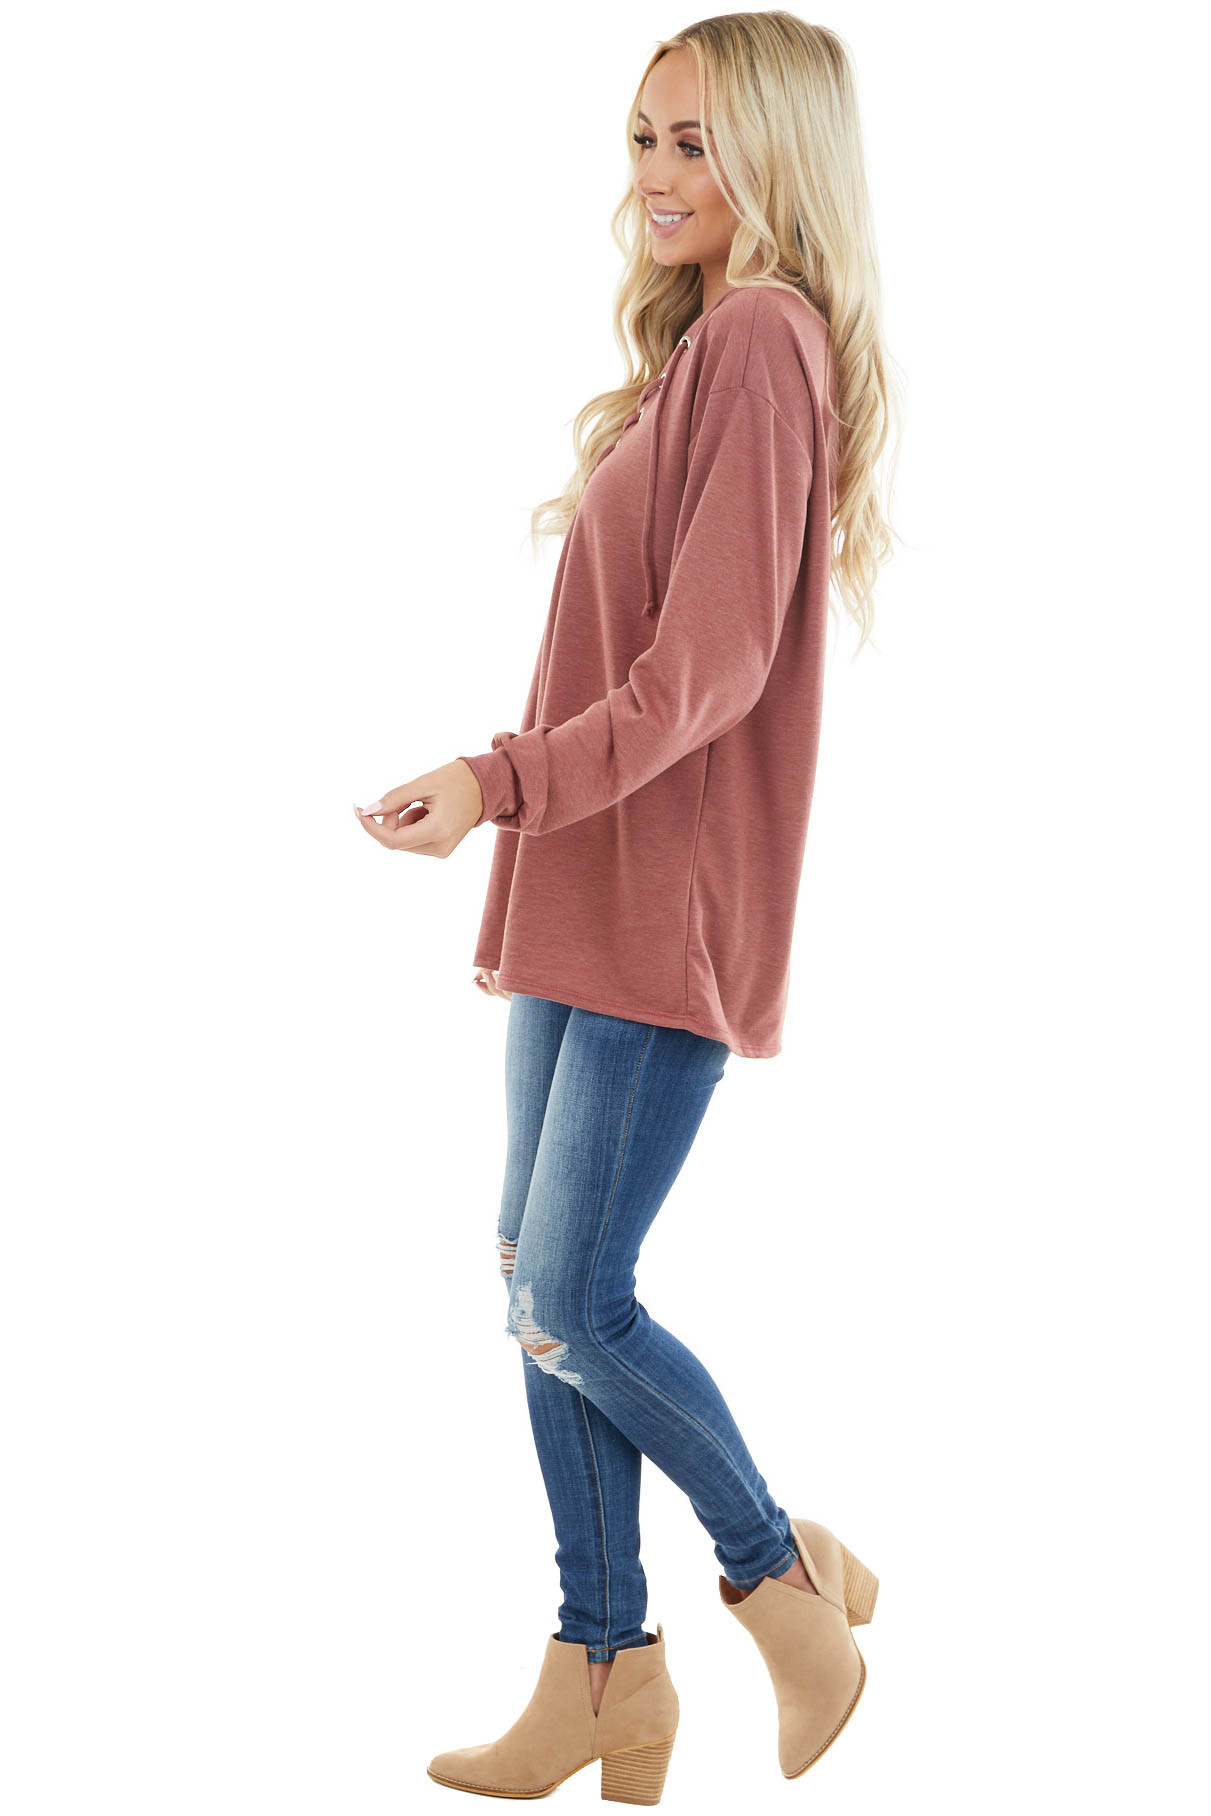 Marsala Long Sleeve Knit Top with Lace Up V Neck Detail